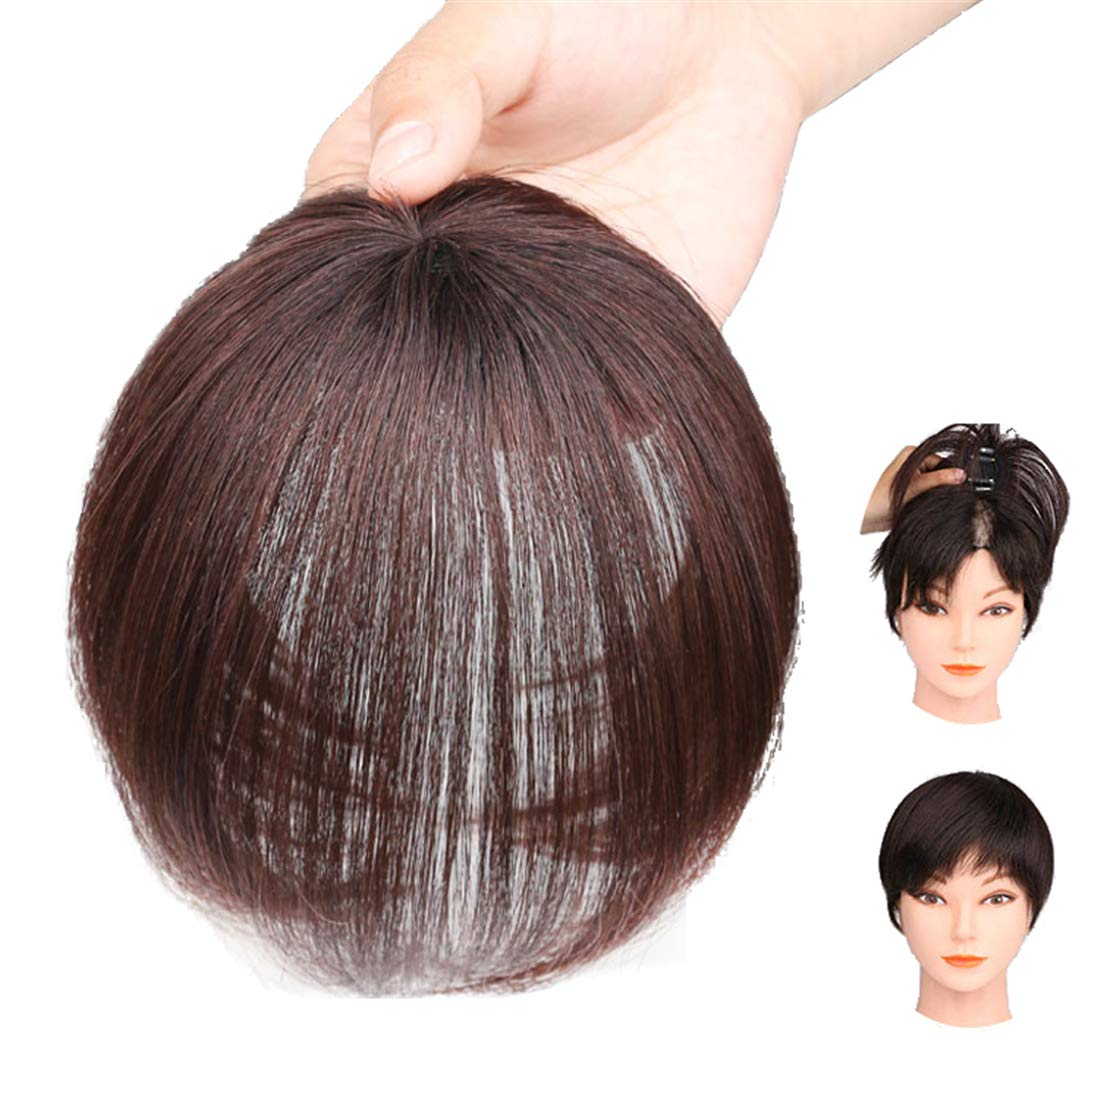 Real Human Hair Crown Toppers for Women with Bald Spot, Clip in Top Hairpieces Toupee for Women 8